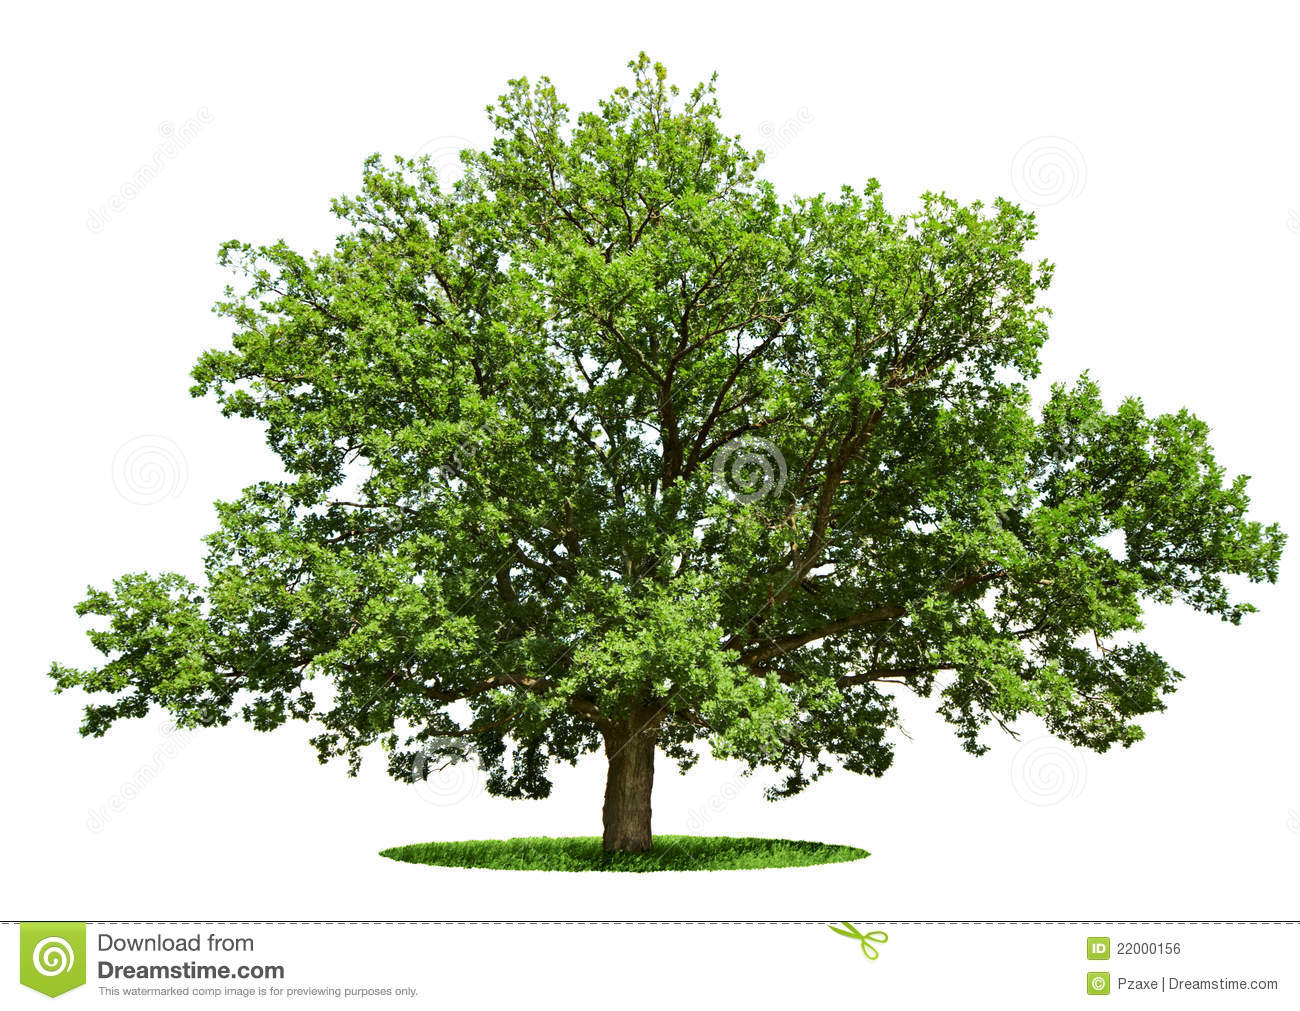 Huge tree clipart.